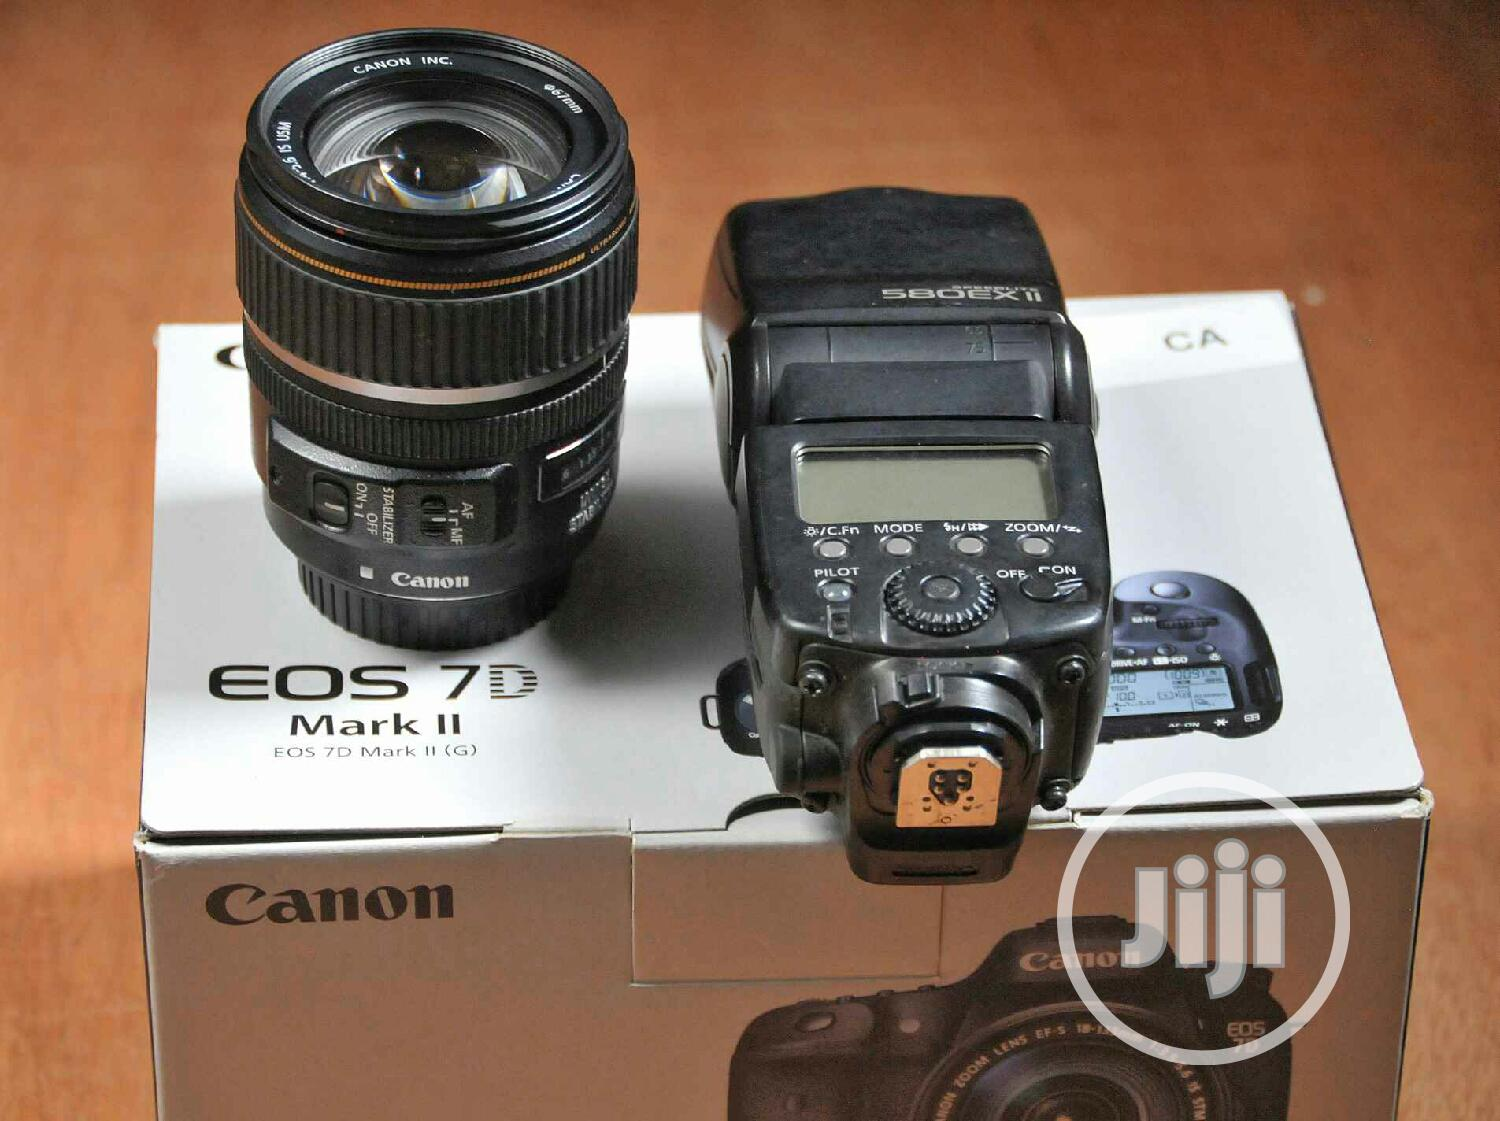 Canon 17-85mm + 7D Mark II Almost Brand New + Speedlite